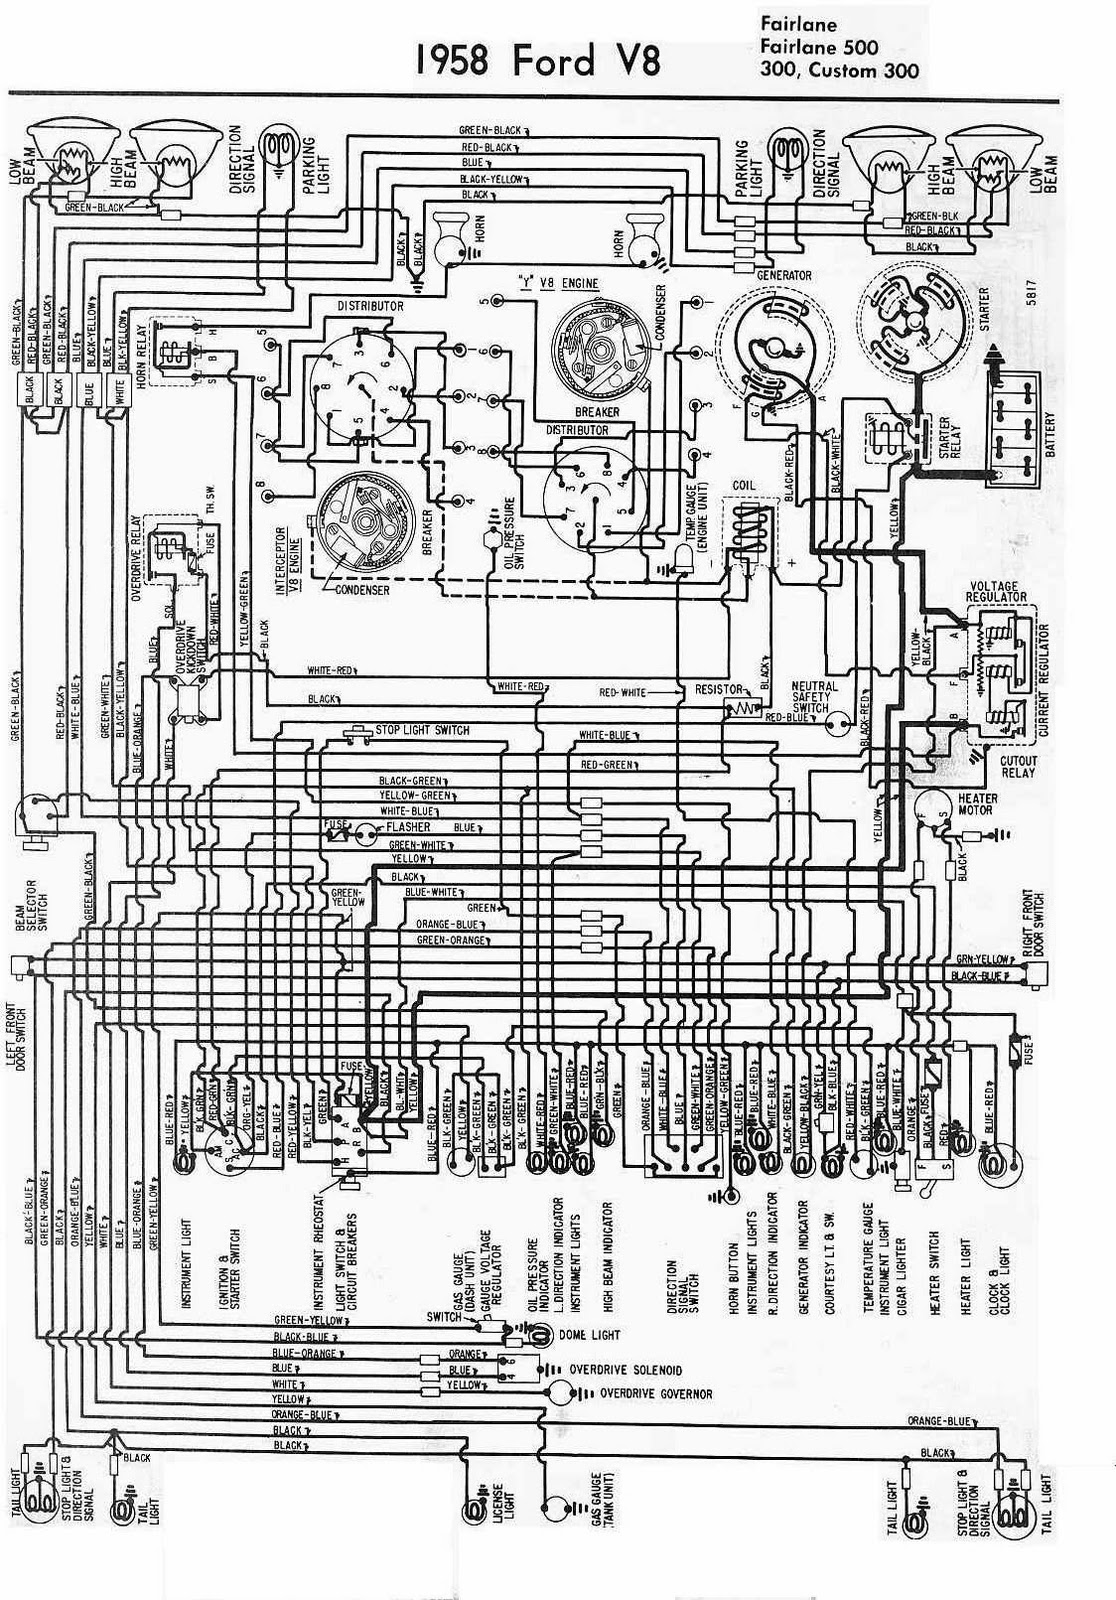 hight resolution of 1955 ford thunderbird also ford falcon fuse panel diagram 1966 ford thunderbird fuse panel diagram as well 1958 ford thunderbird